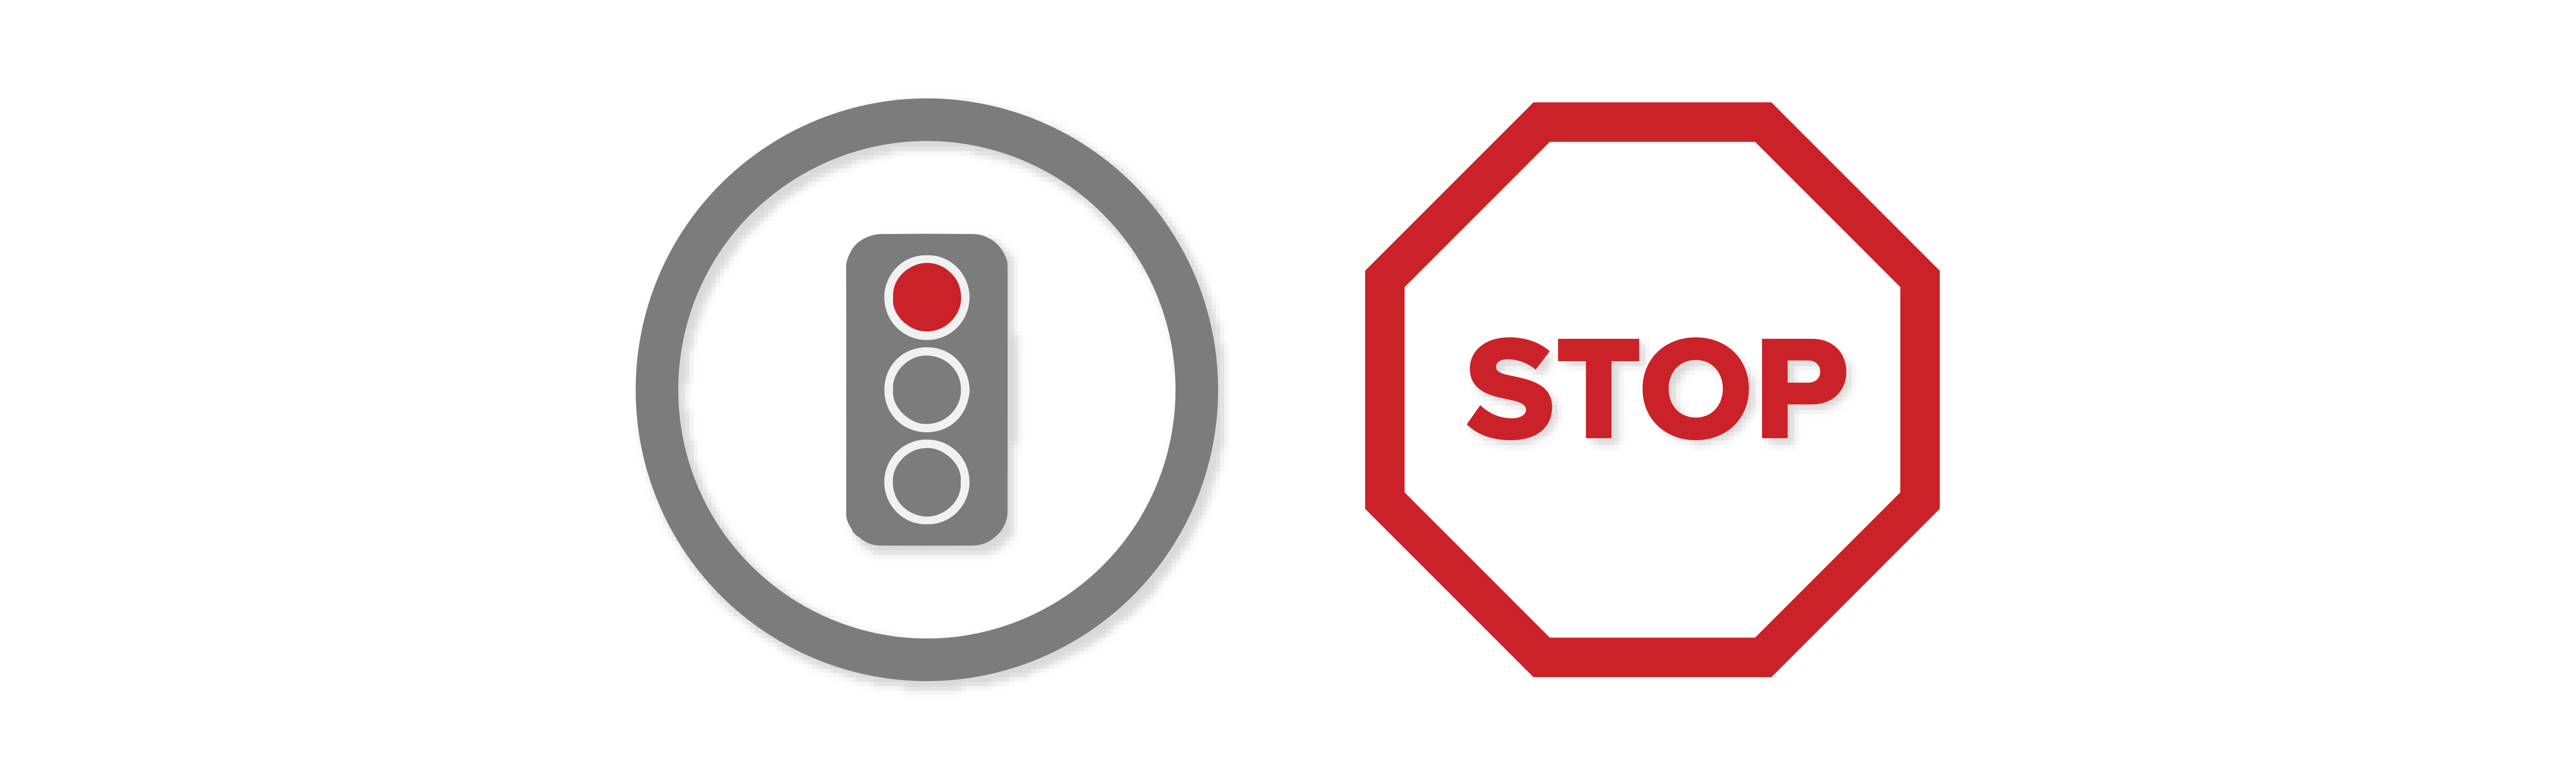 stop at red lights and stop signs